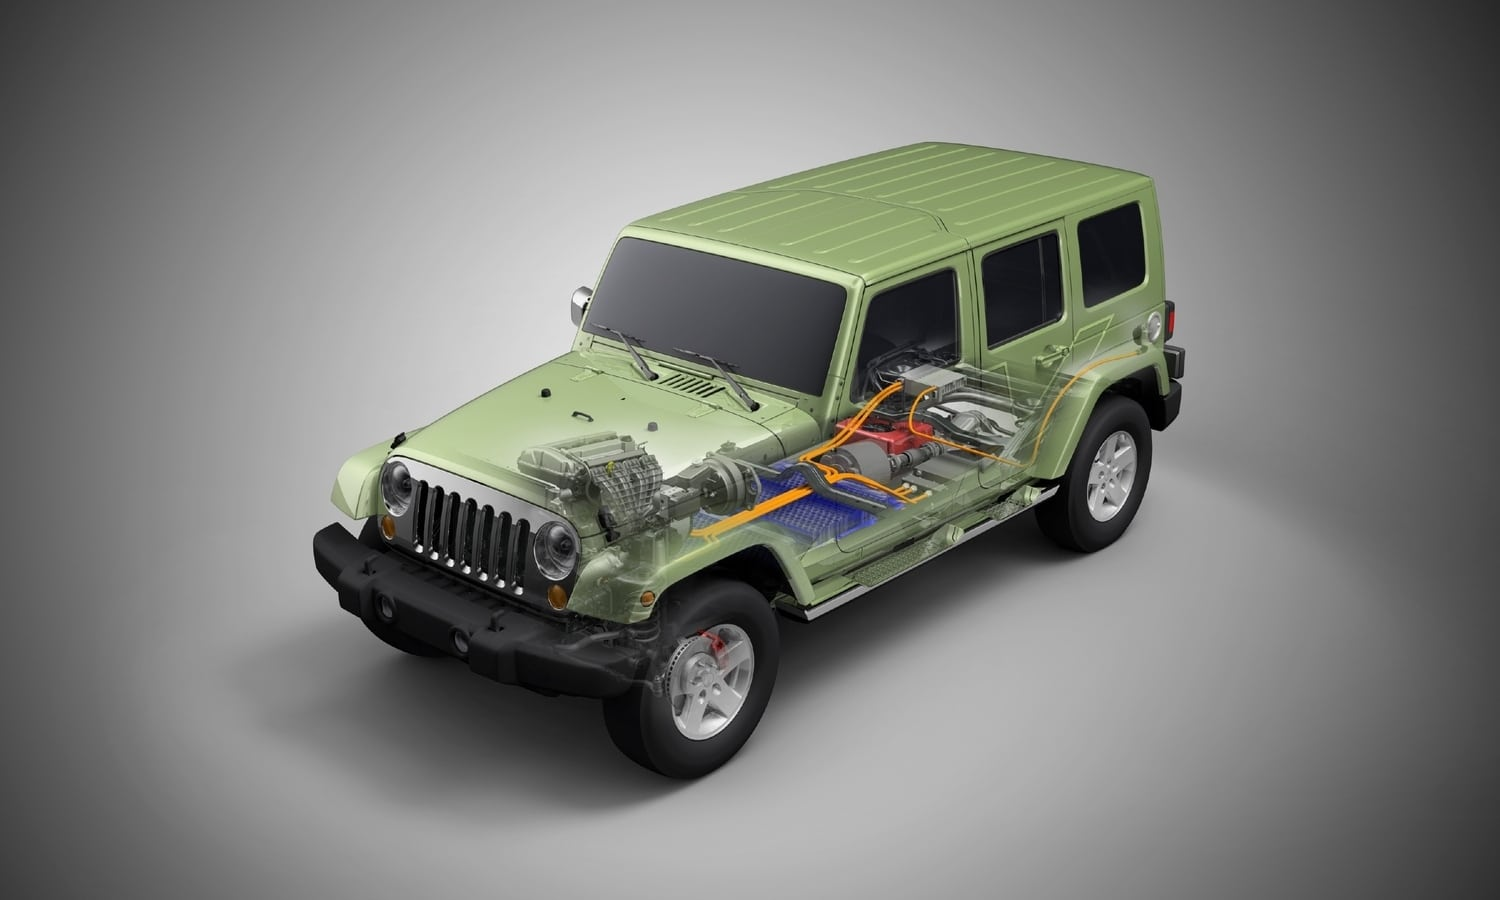 Jeep Wrangler electric prototype